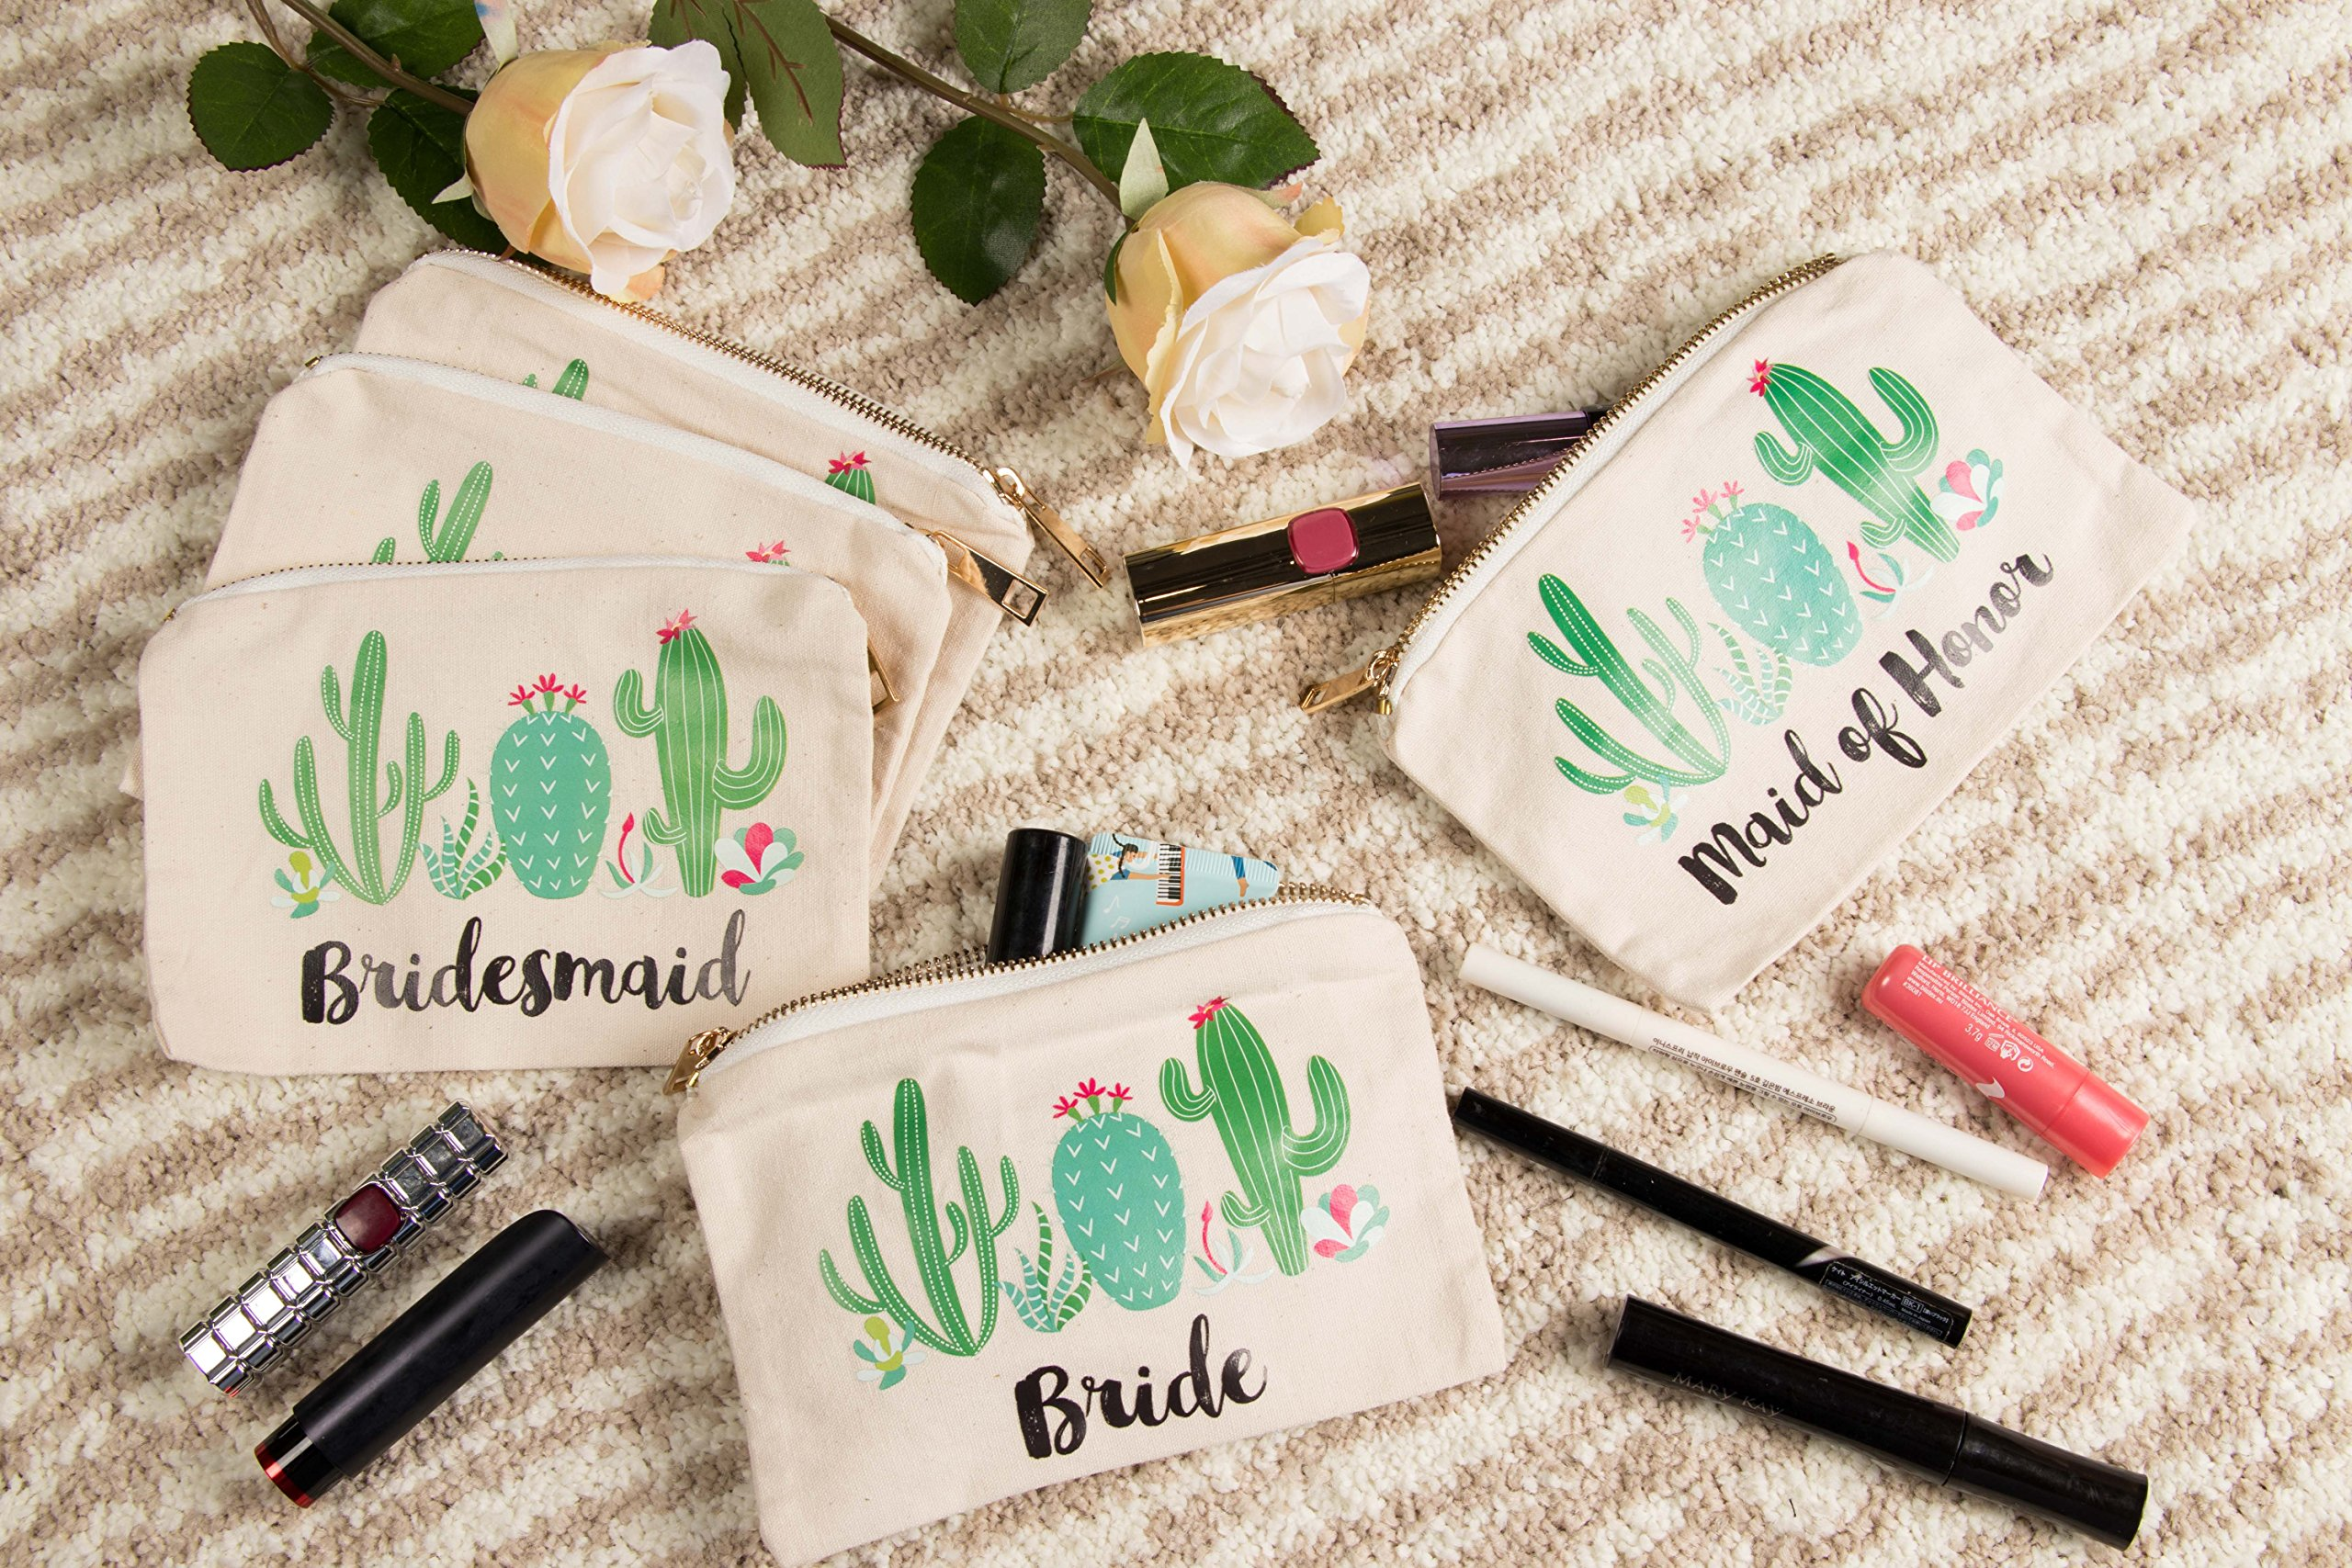 2f542a15e4 Bridal Shower Makeup Bag - 5-Pack Canvas Cosmetic Pouches for Wedding  Favors, Bachelorette Party Gifts, Bride Tribe Accessories, Cactus Design,  7.2 x ...